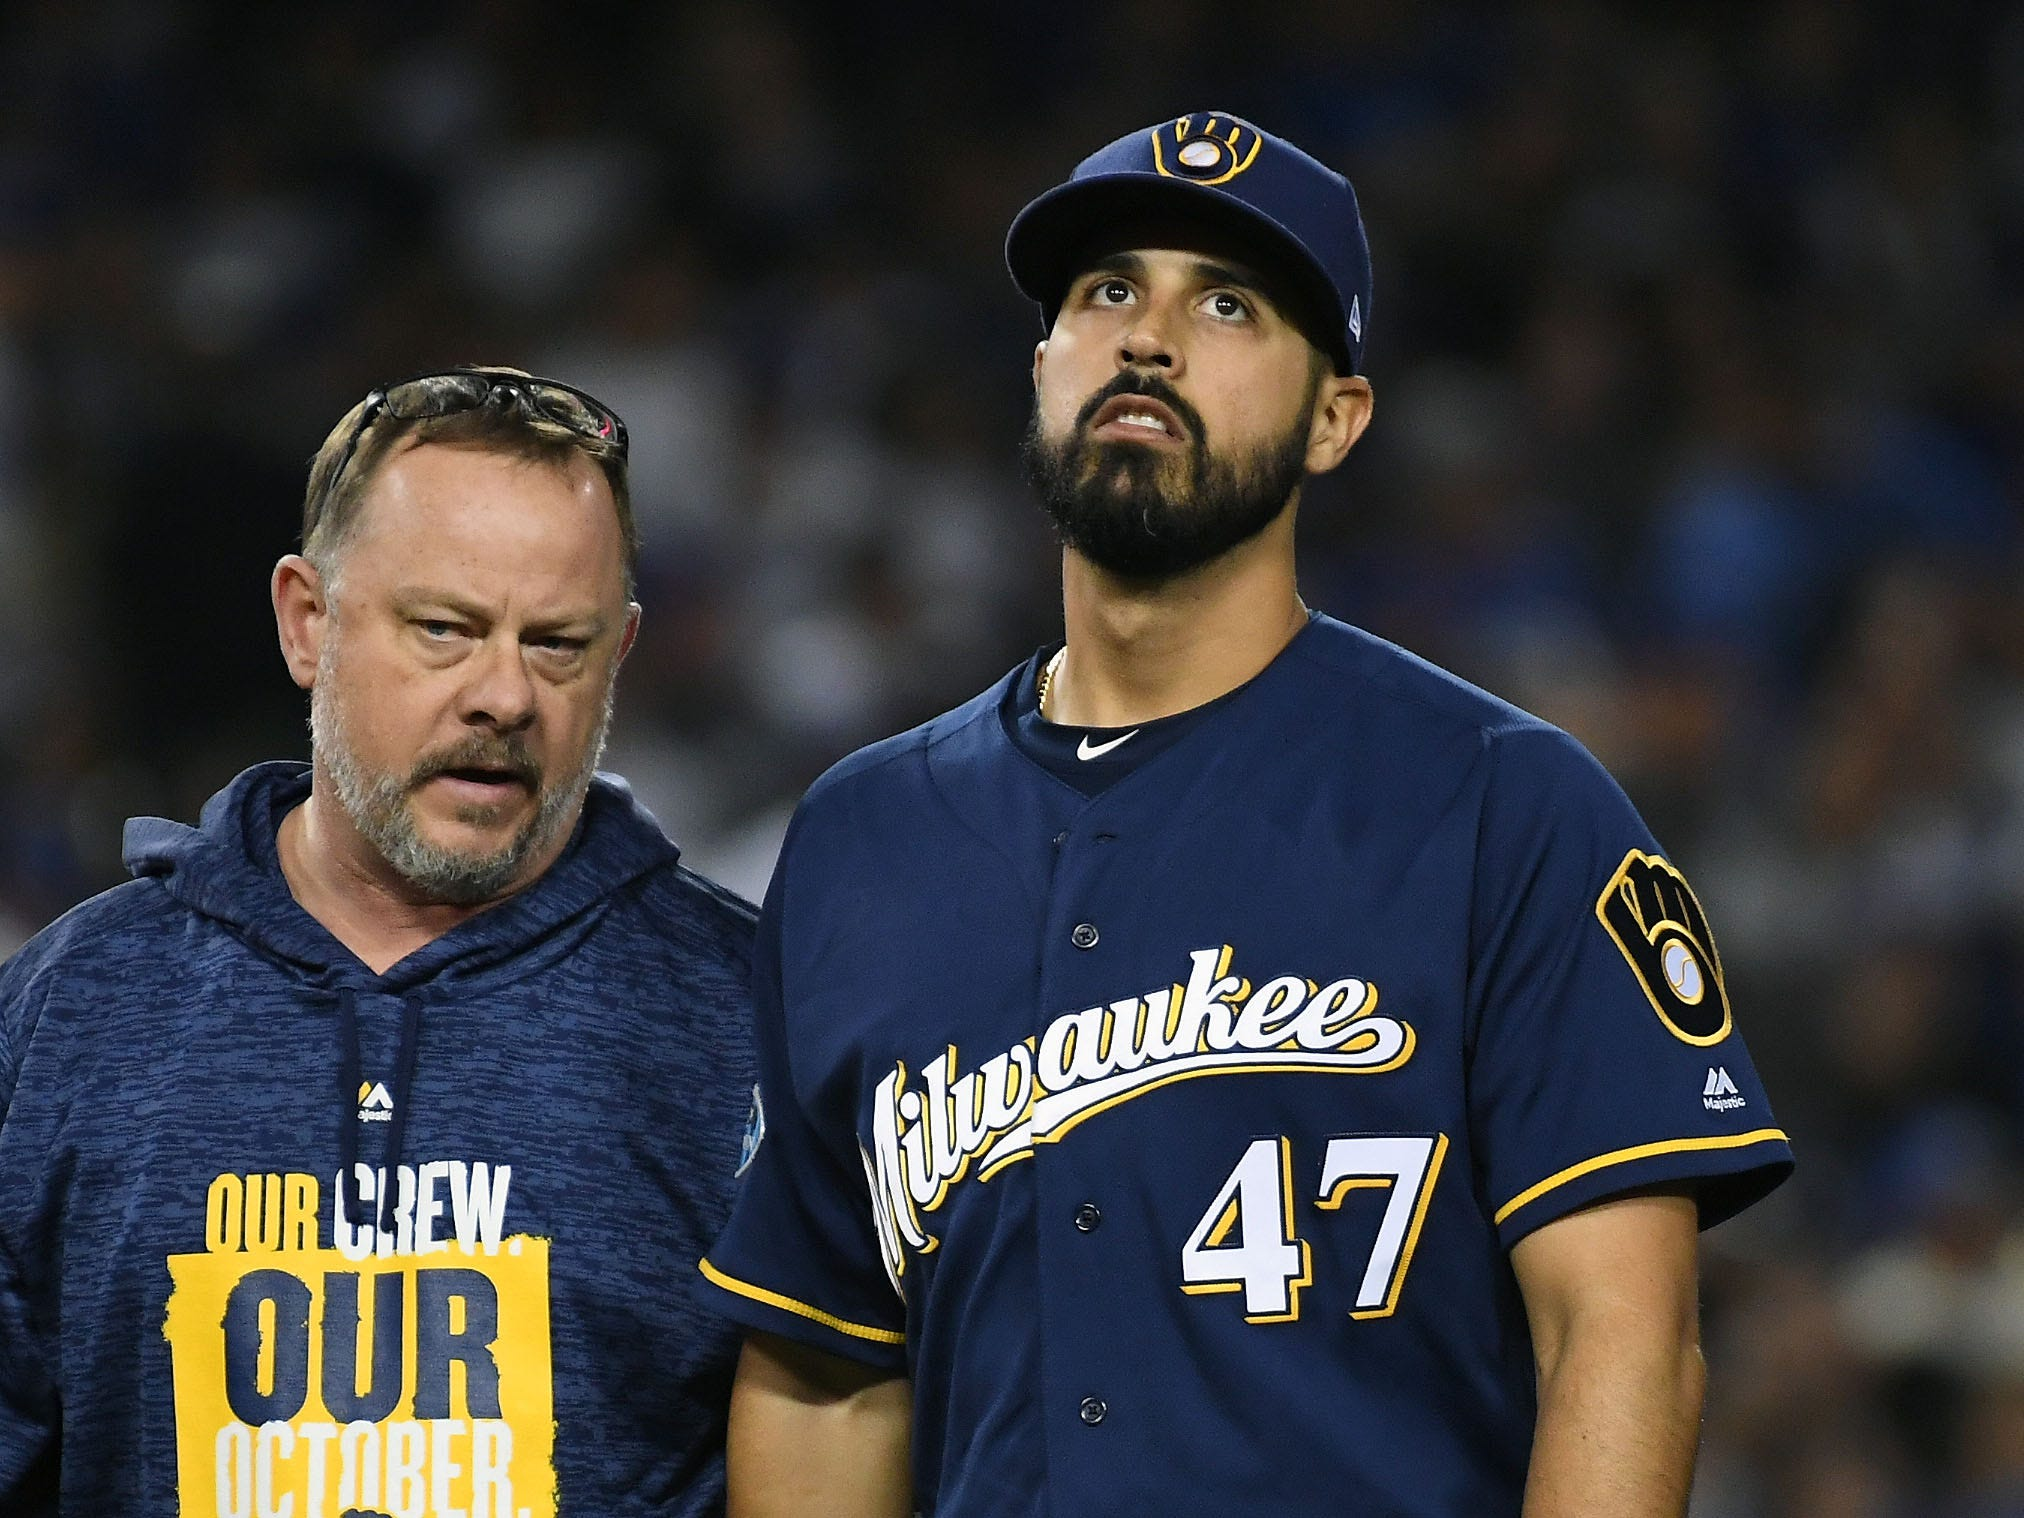 NLCS Game 4: Brewers starting pitcher Gio Gonzalez injures his ankle and has to leave the game in the second inning.